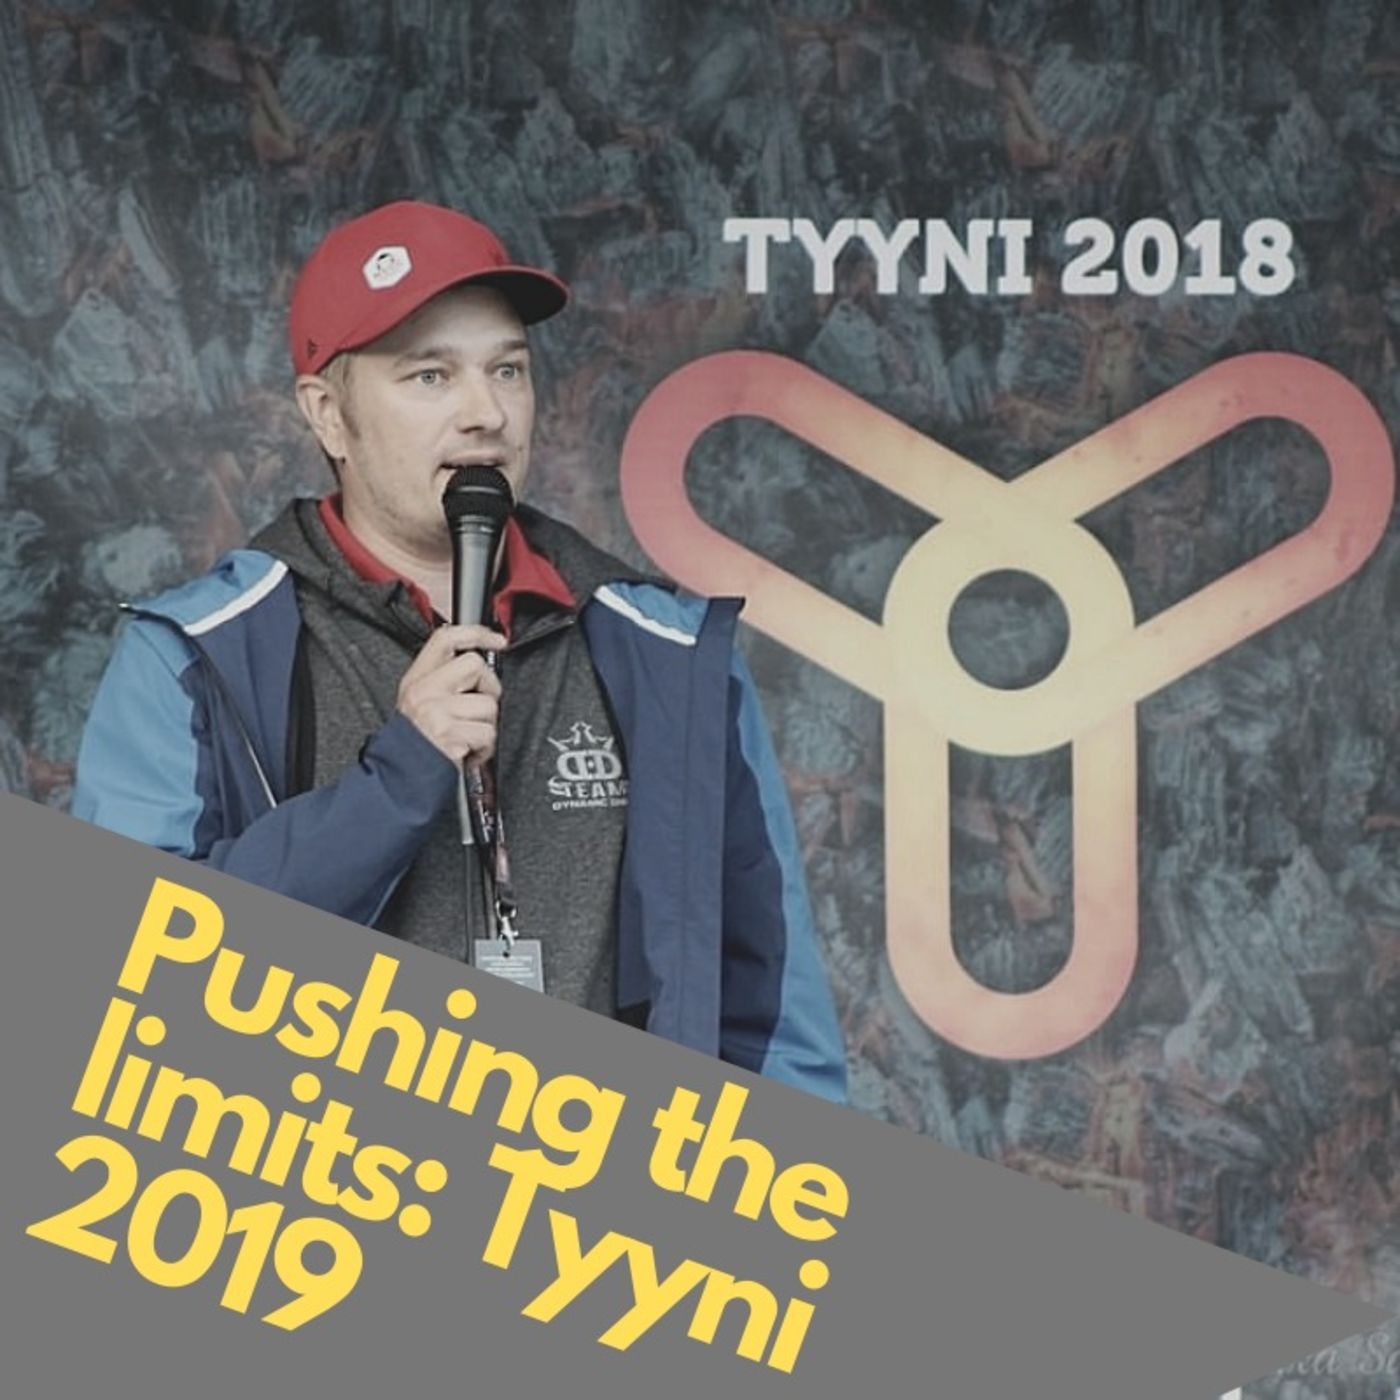 Pusing the limits with Tyyni 2019